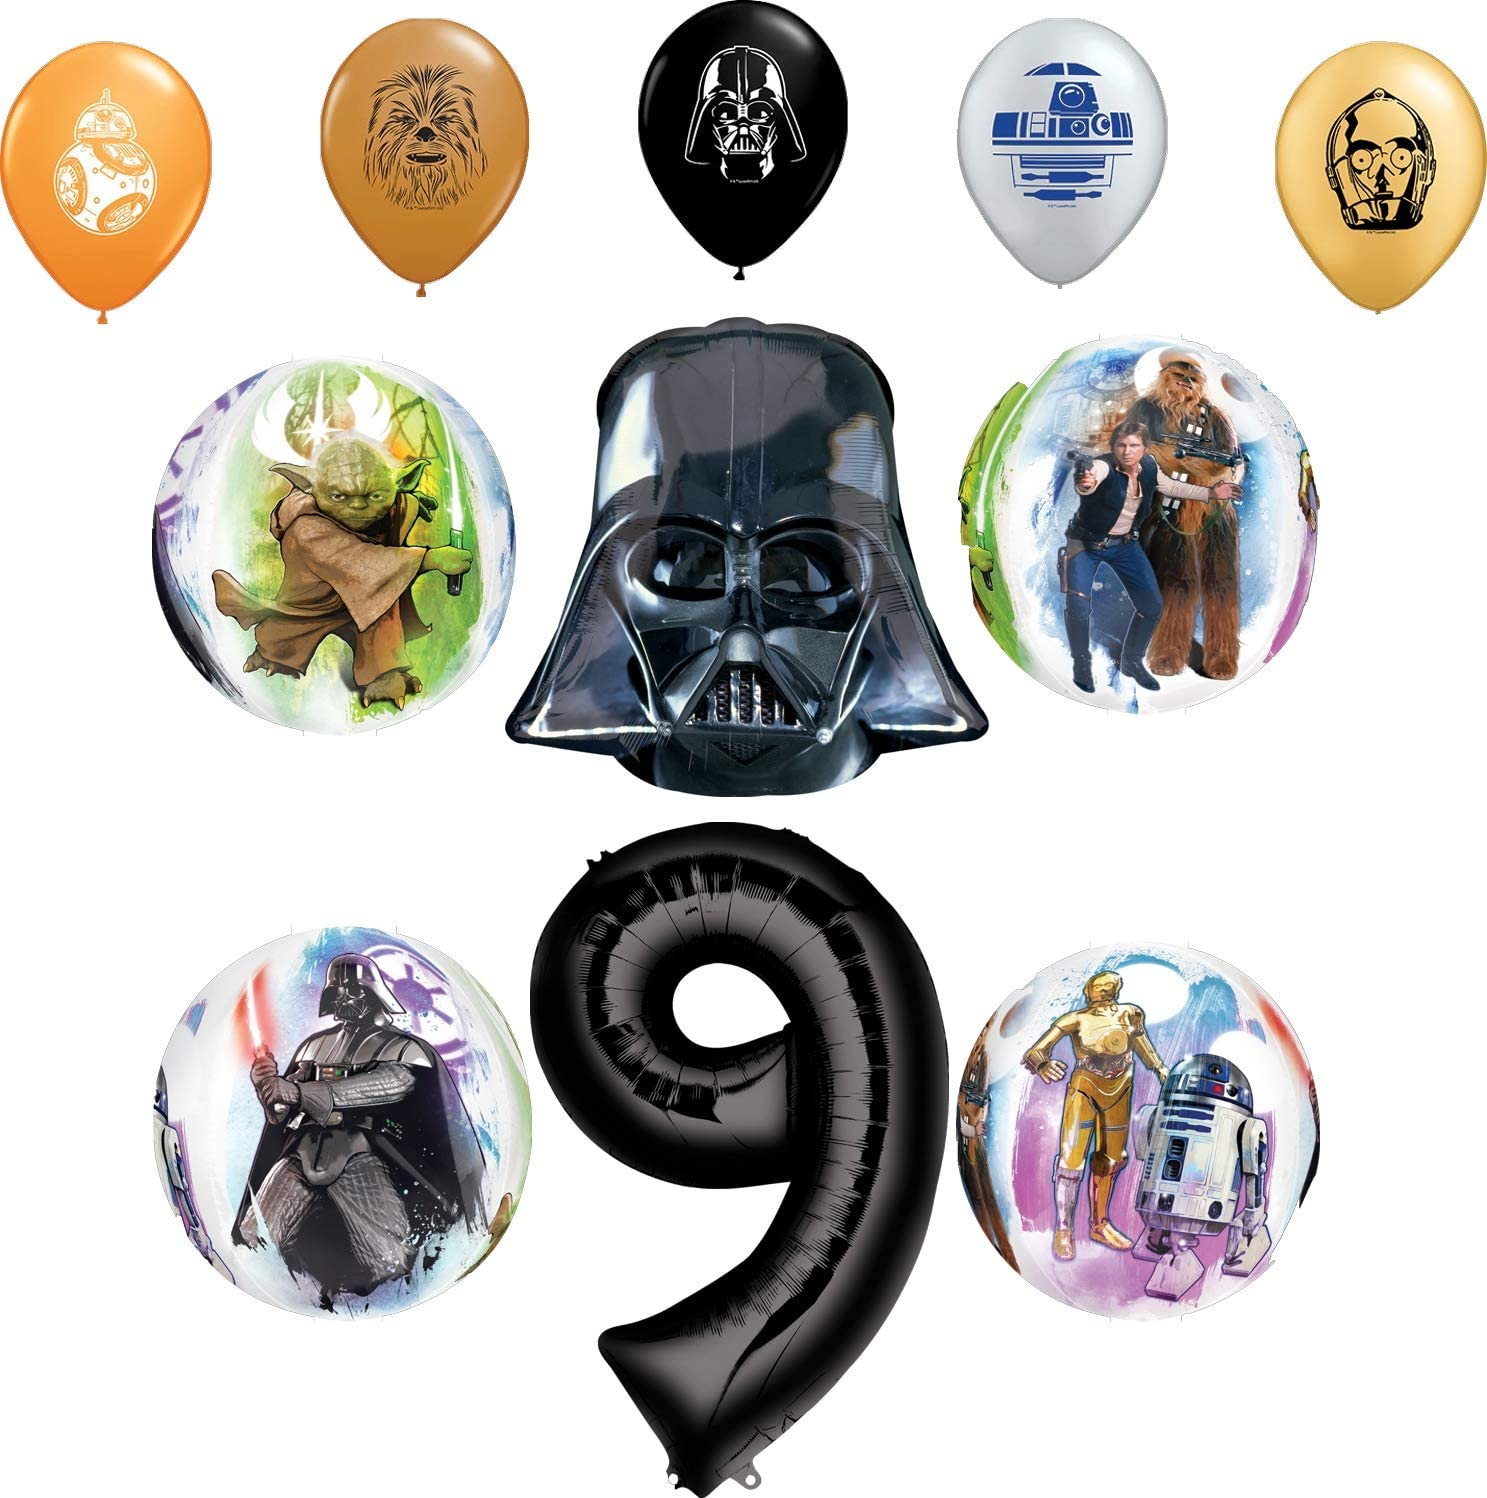 Star Wars Party Supplies 9th Birthday Orbz Balloon Bouquet Decorations and 11